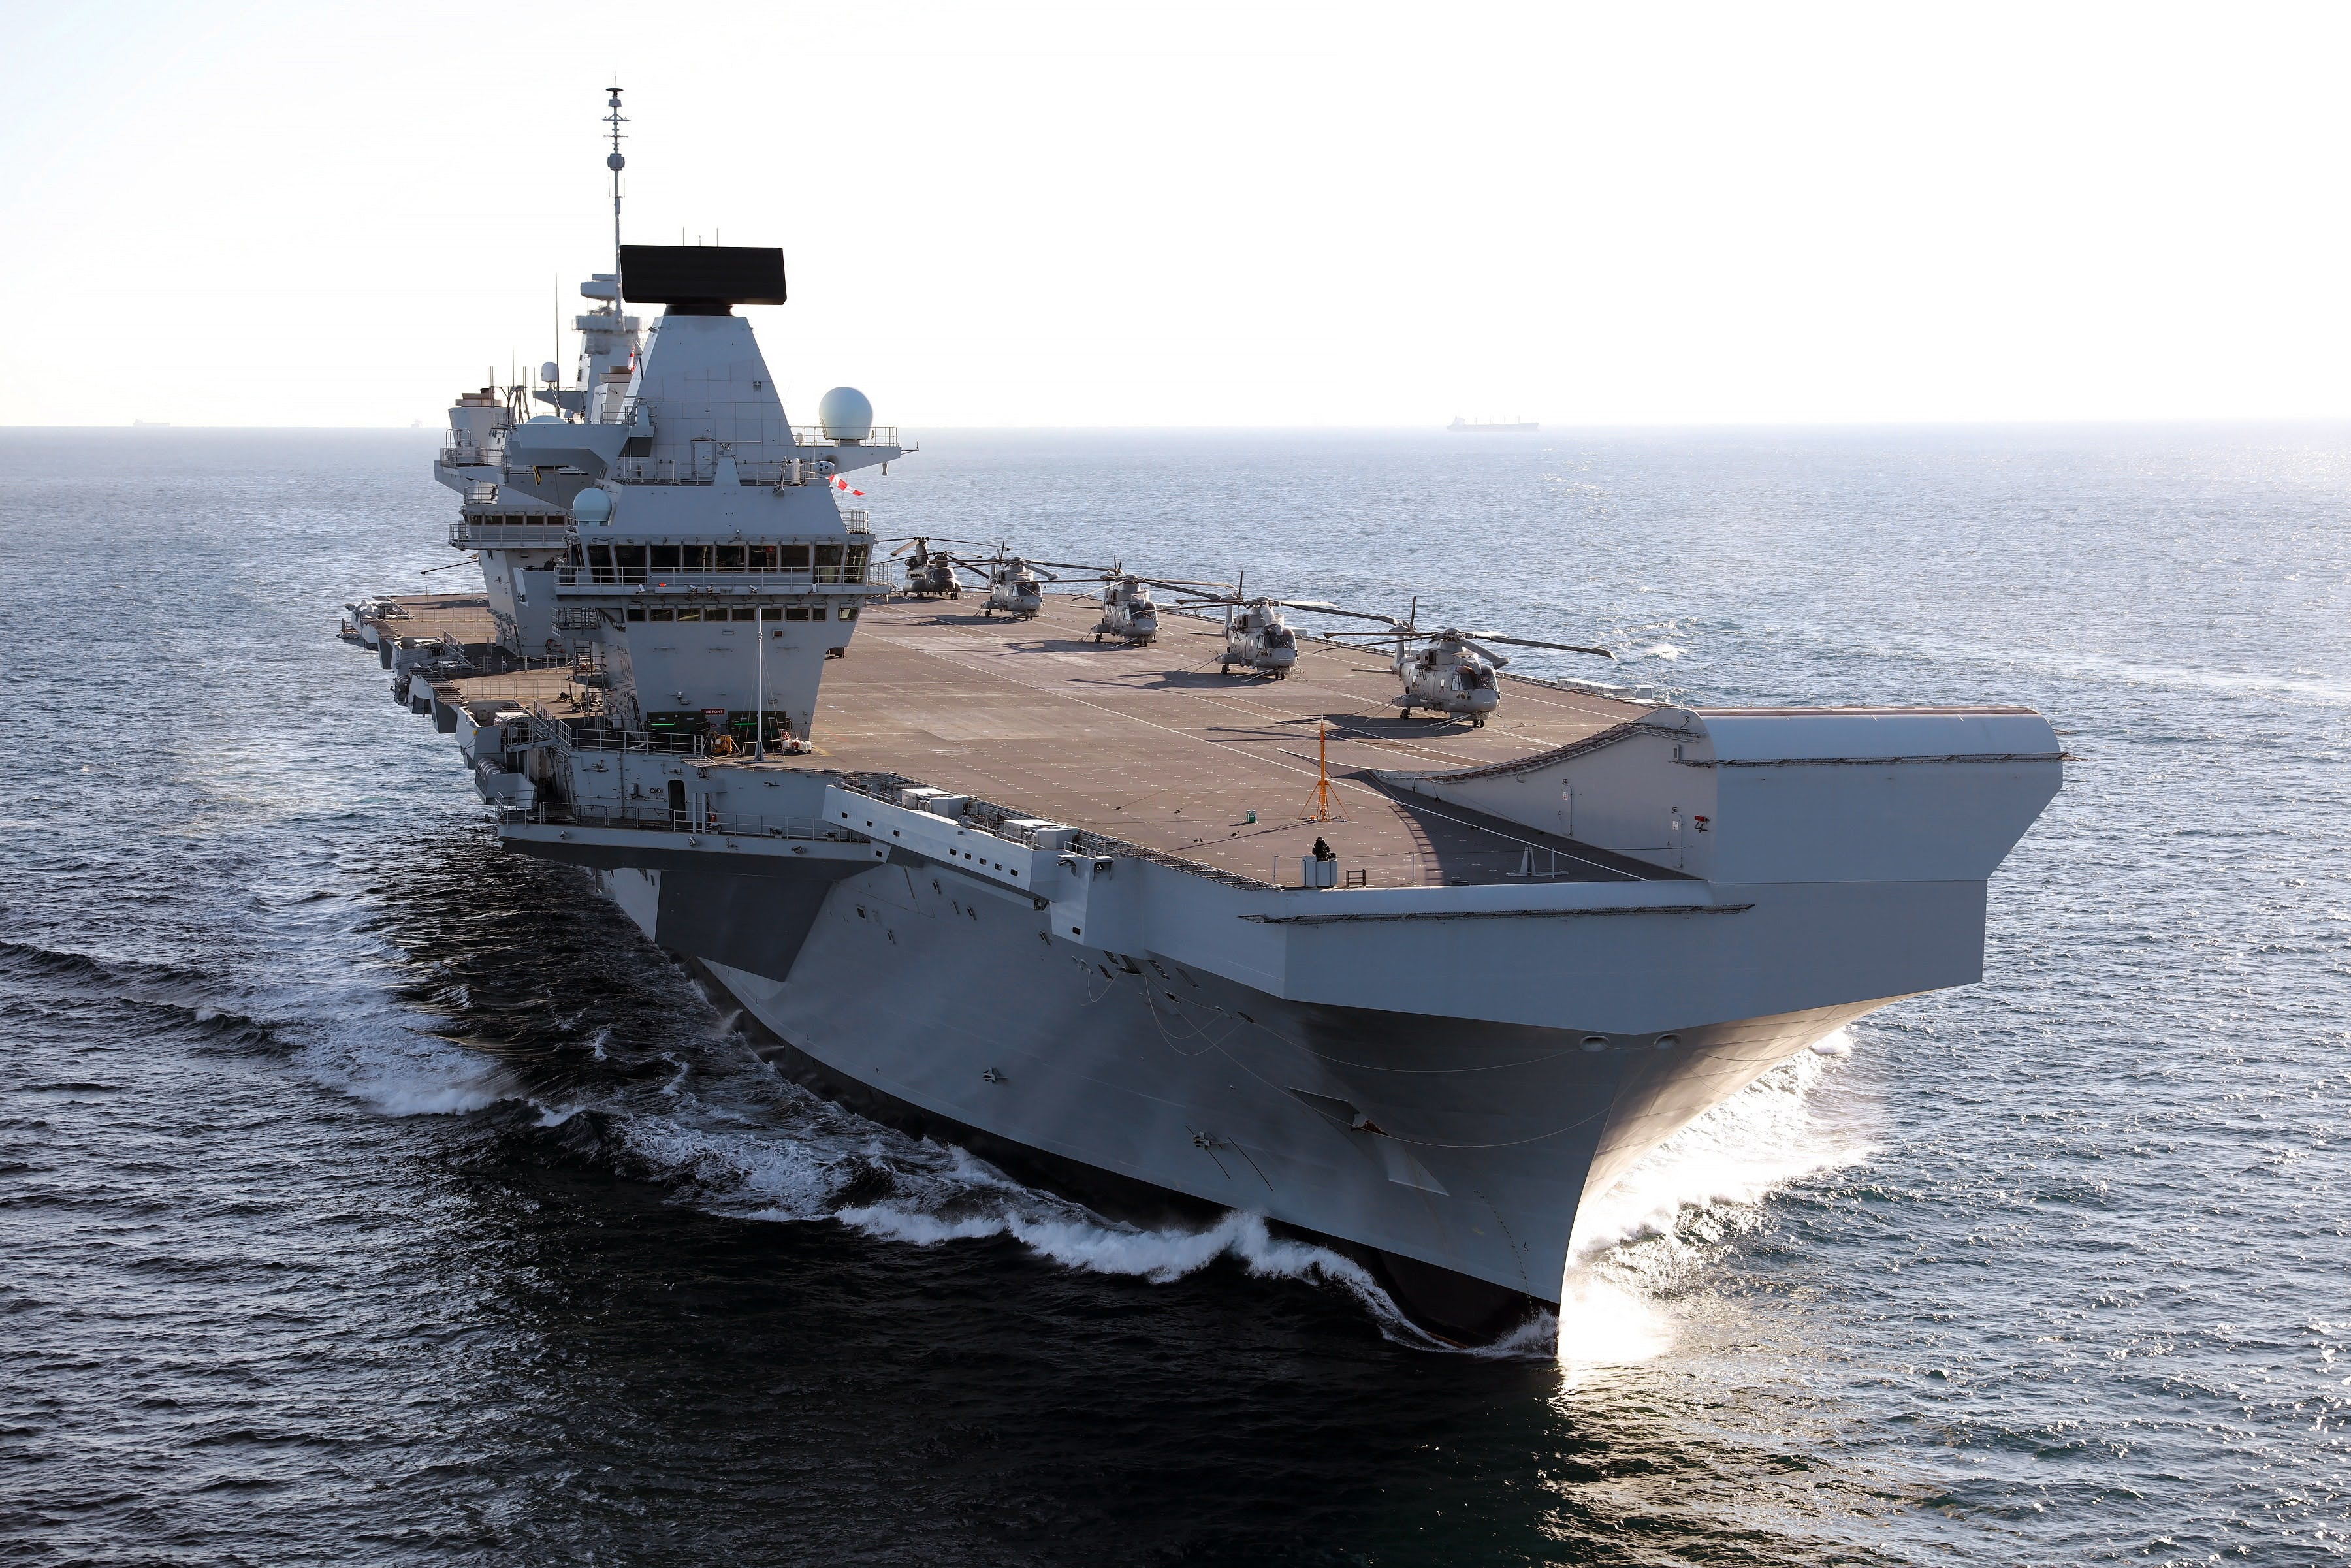 Why are the Queen Elizabeth class carriers so big?